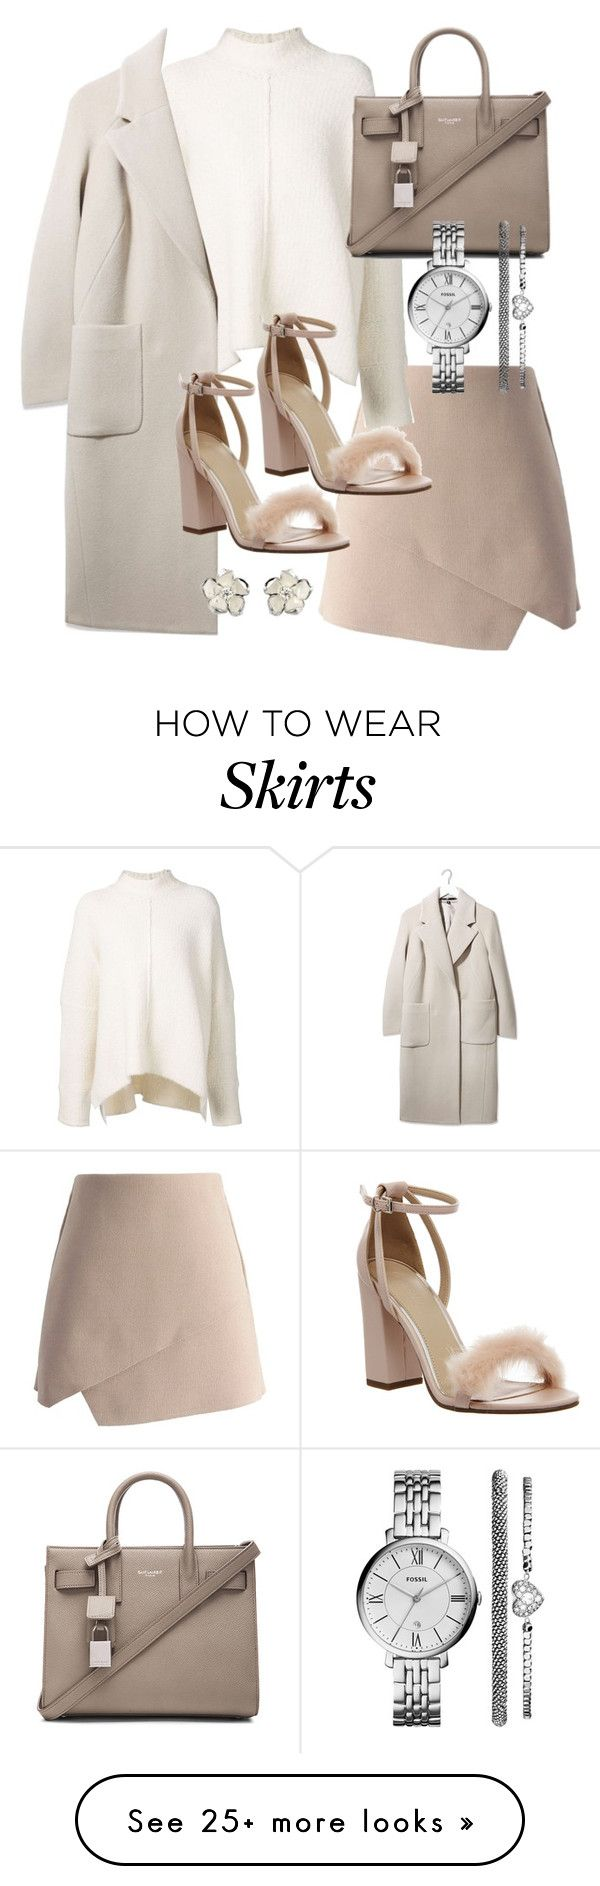 """Untitled #19350"" by florencia95 on Polyvore featuring Chicwish, URBAN ZEN, Boutique, Office, Yves Saint Laurent, FOSSIL and Shaun Leane"